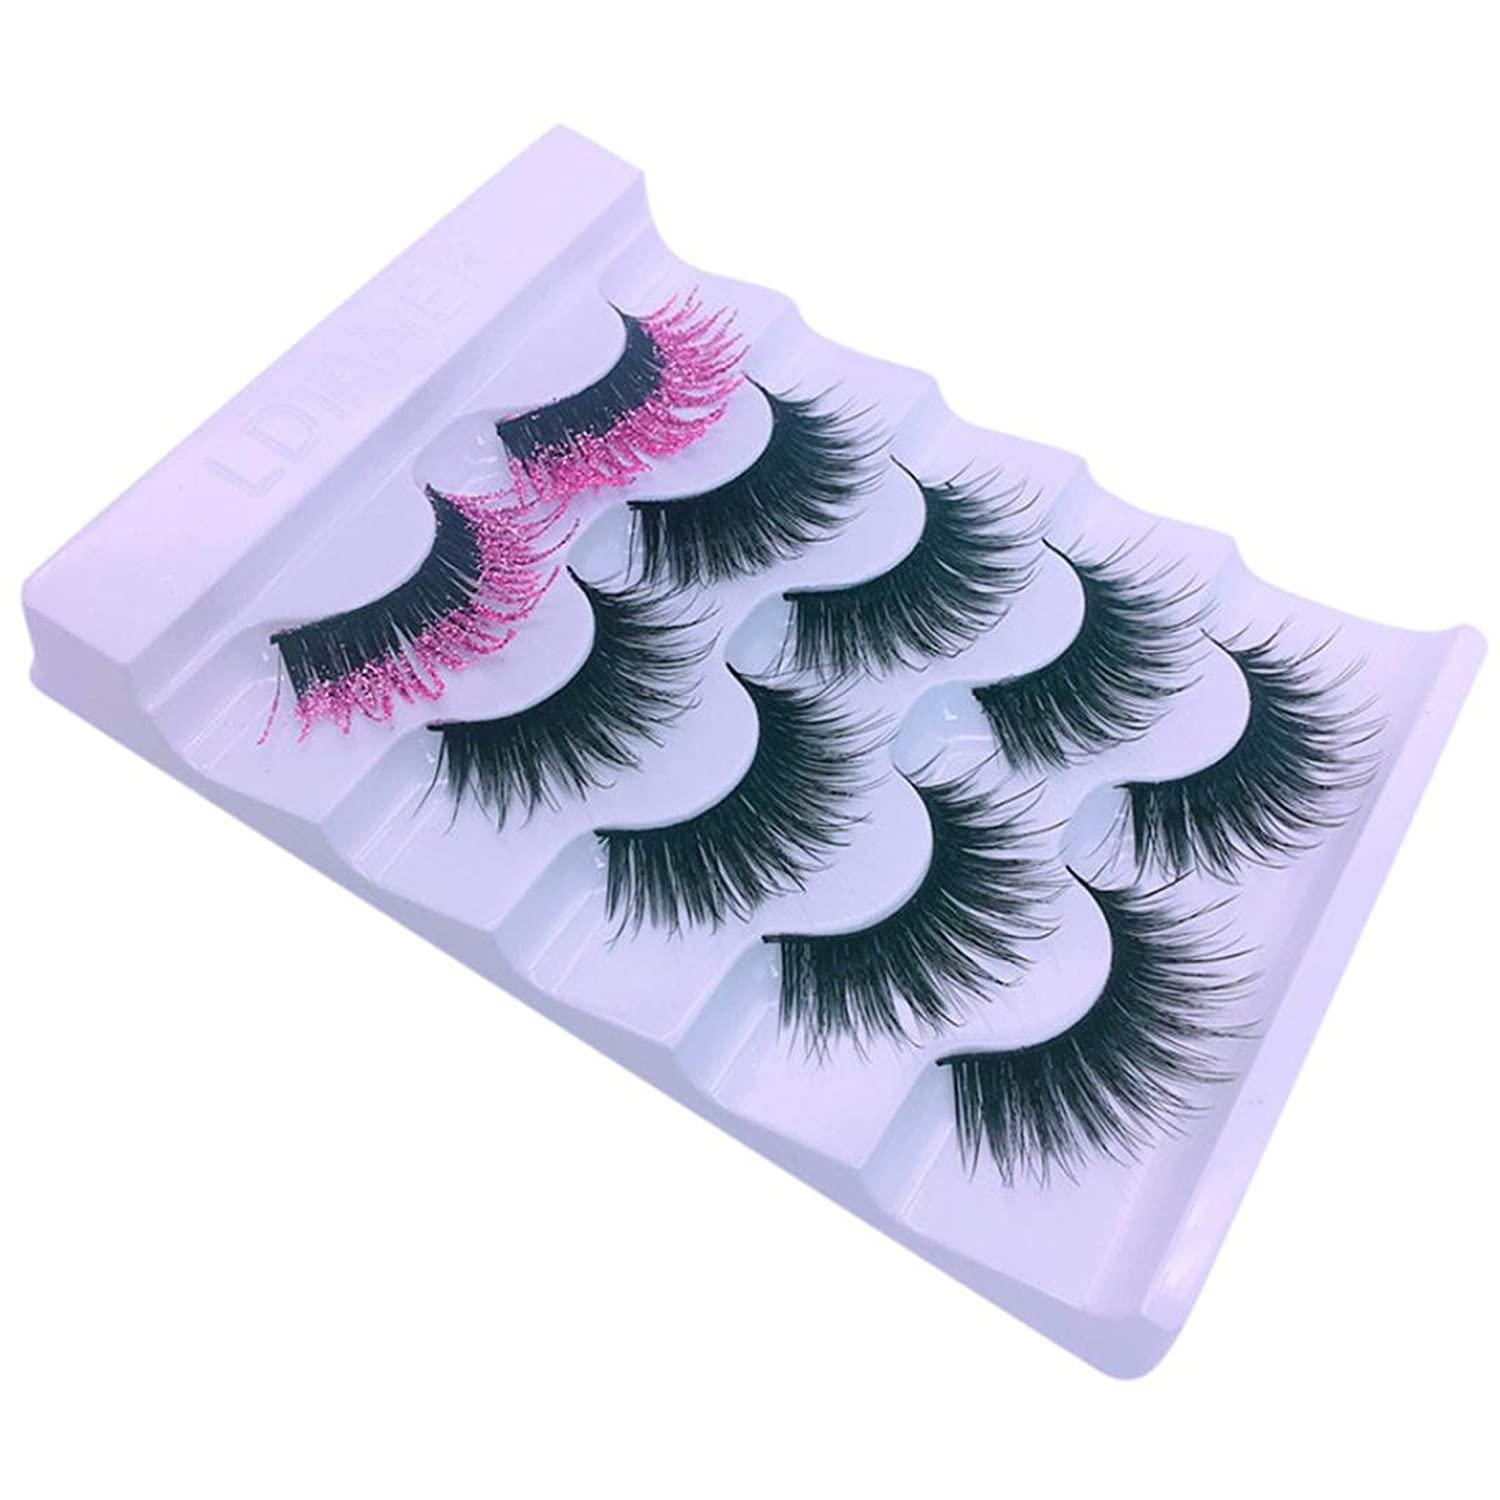 happy event 5 Paare Luxus 3D Rosa Criss Kreuzen Falsche//K/ünstliche Wimpern Nat/ürliche f/ür Make-up 3D Pink Luxury Crisscross False Eyelashes HOT Eye Lashes